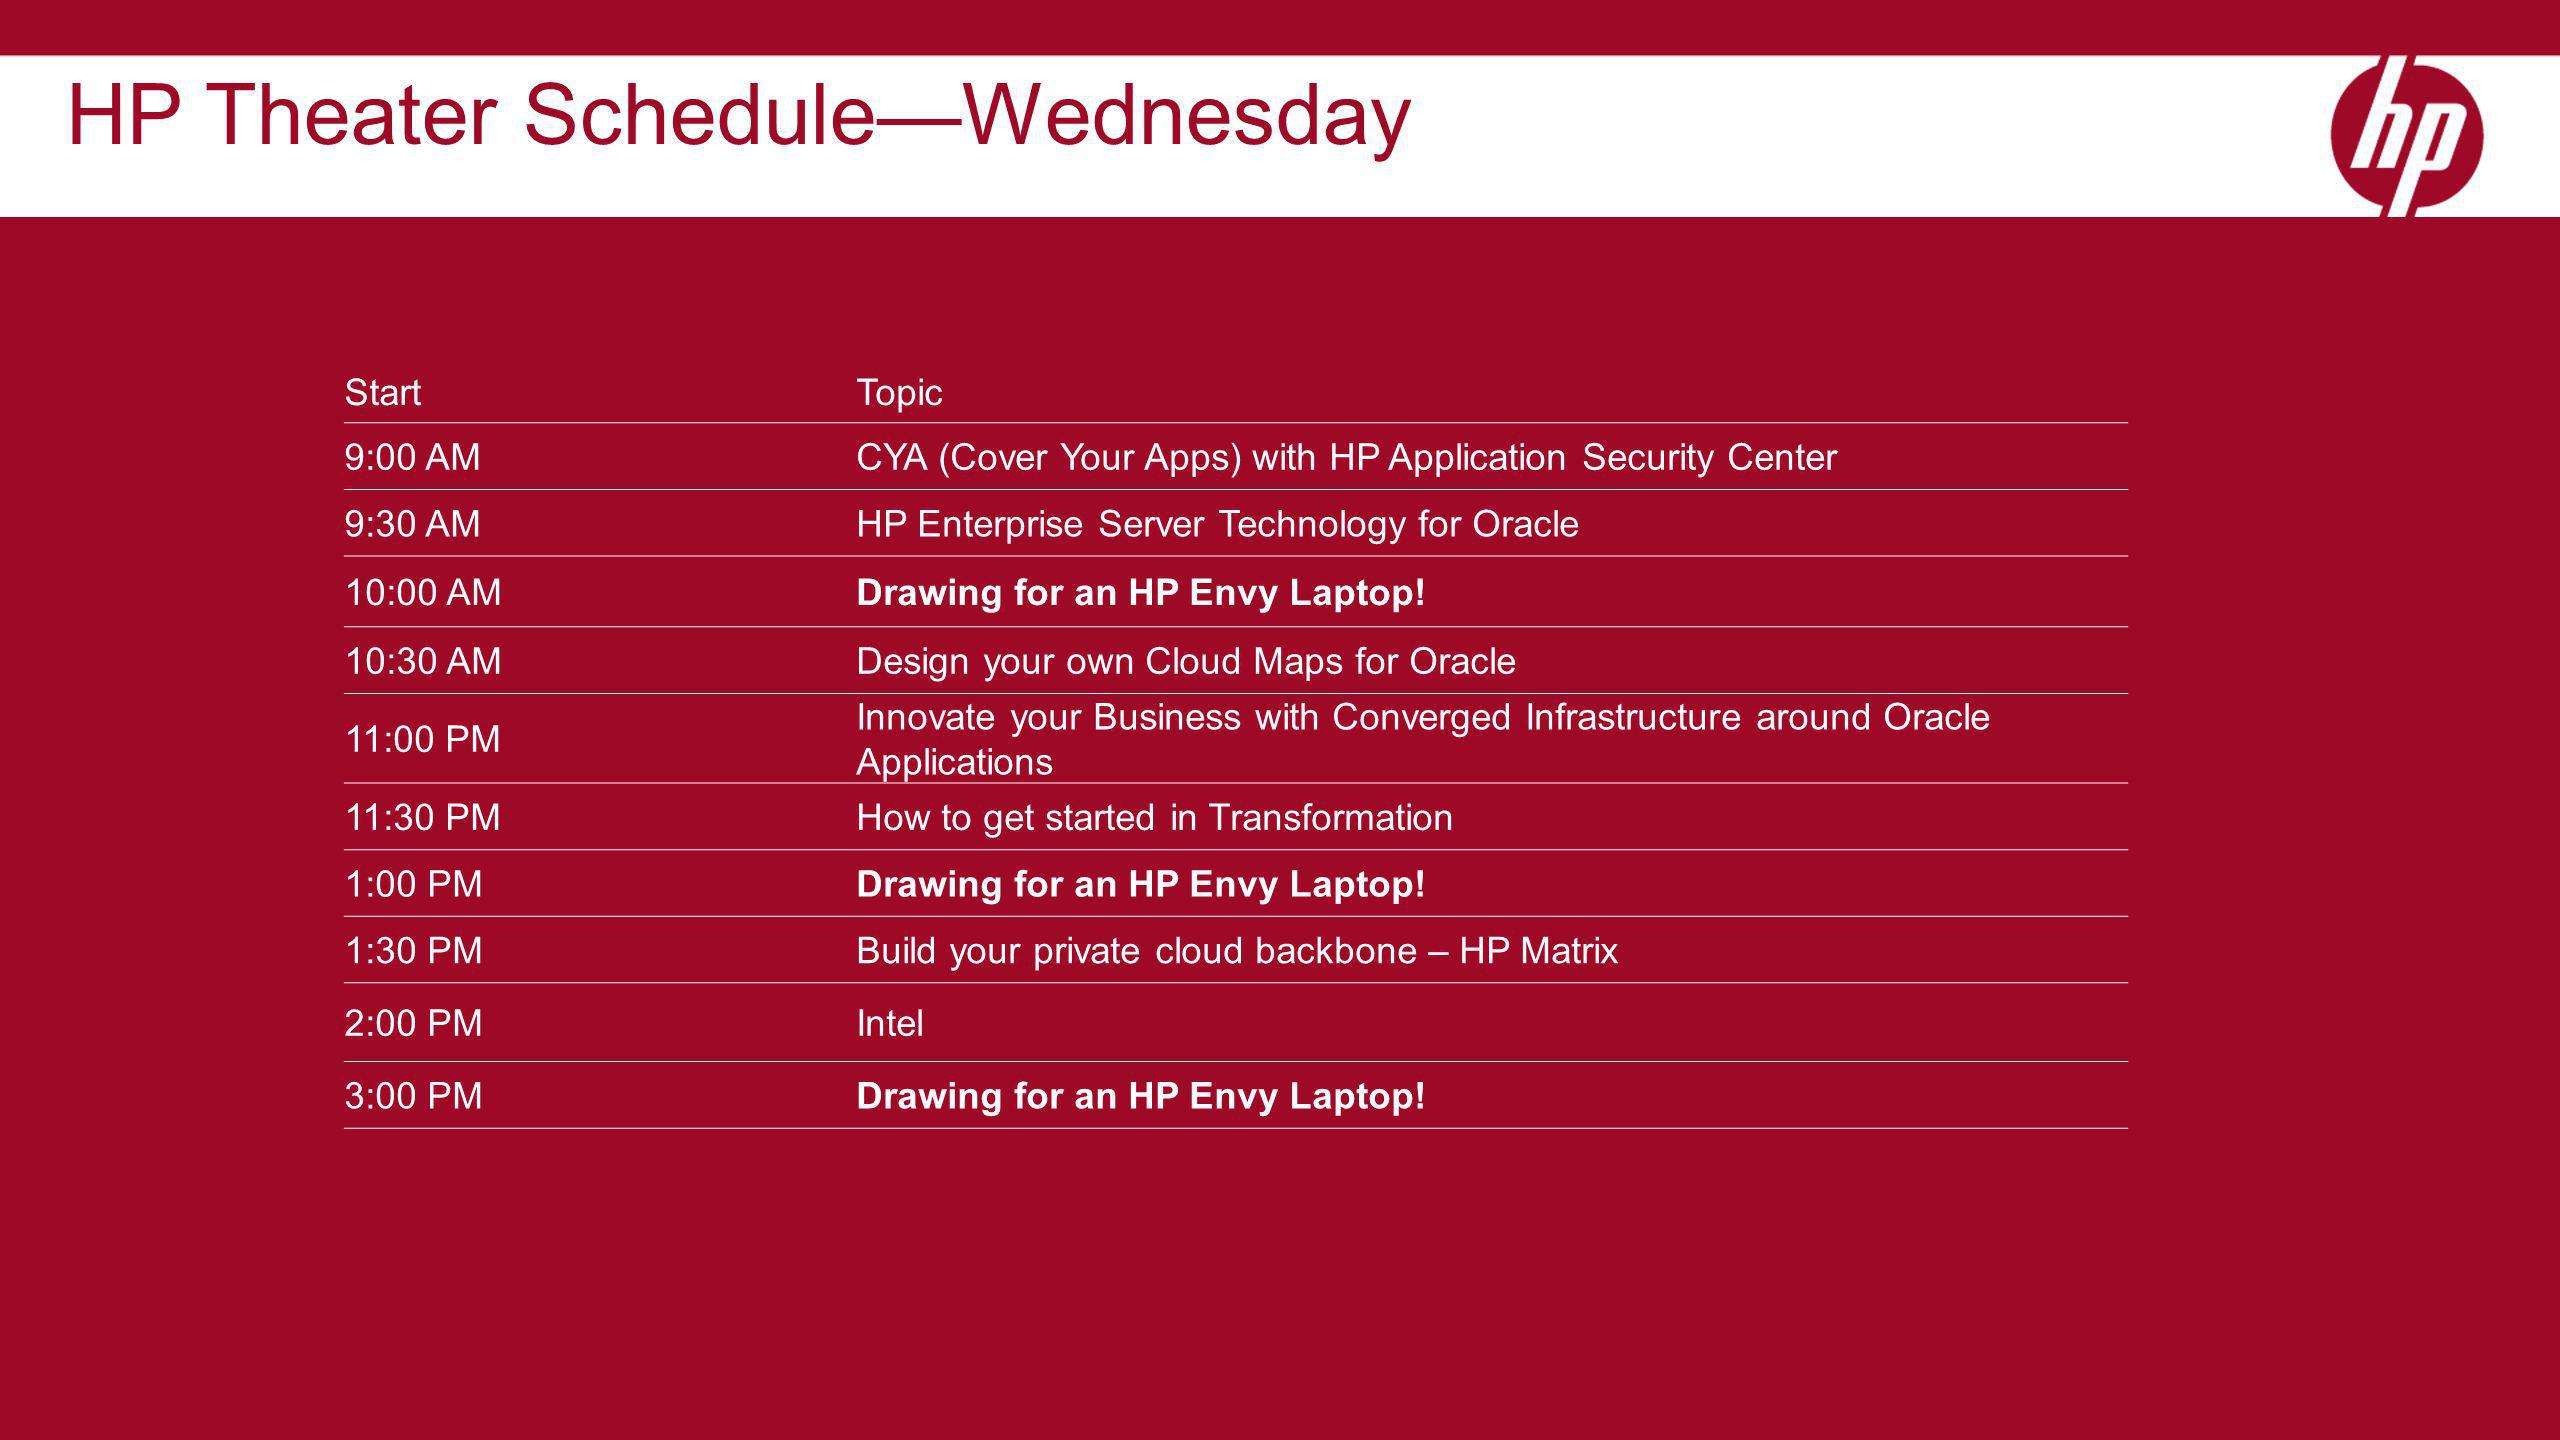 StartTopic 9:00 AMCYA (Cover Your Apps) with HP Application Security Center 9:30 AMHP Enterprise Server Technology for Oracle 10:00 AMDrawing for an H